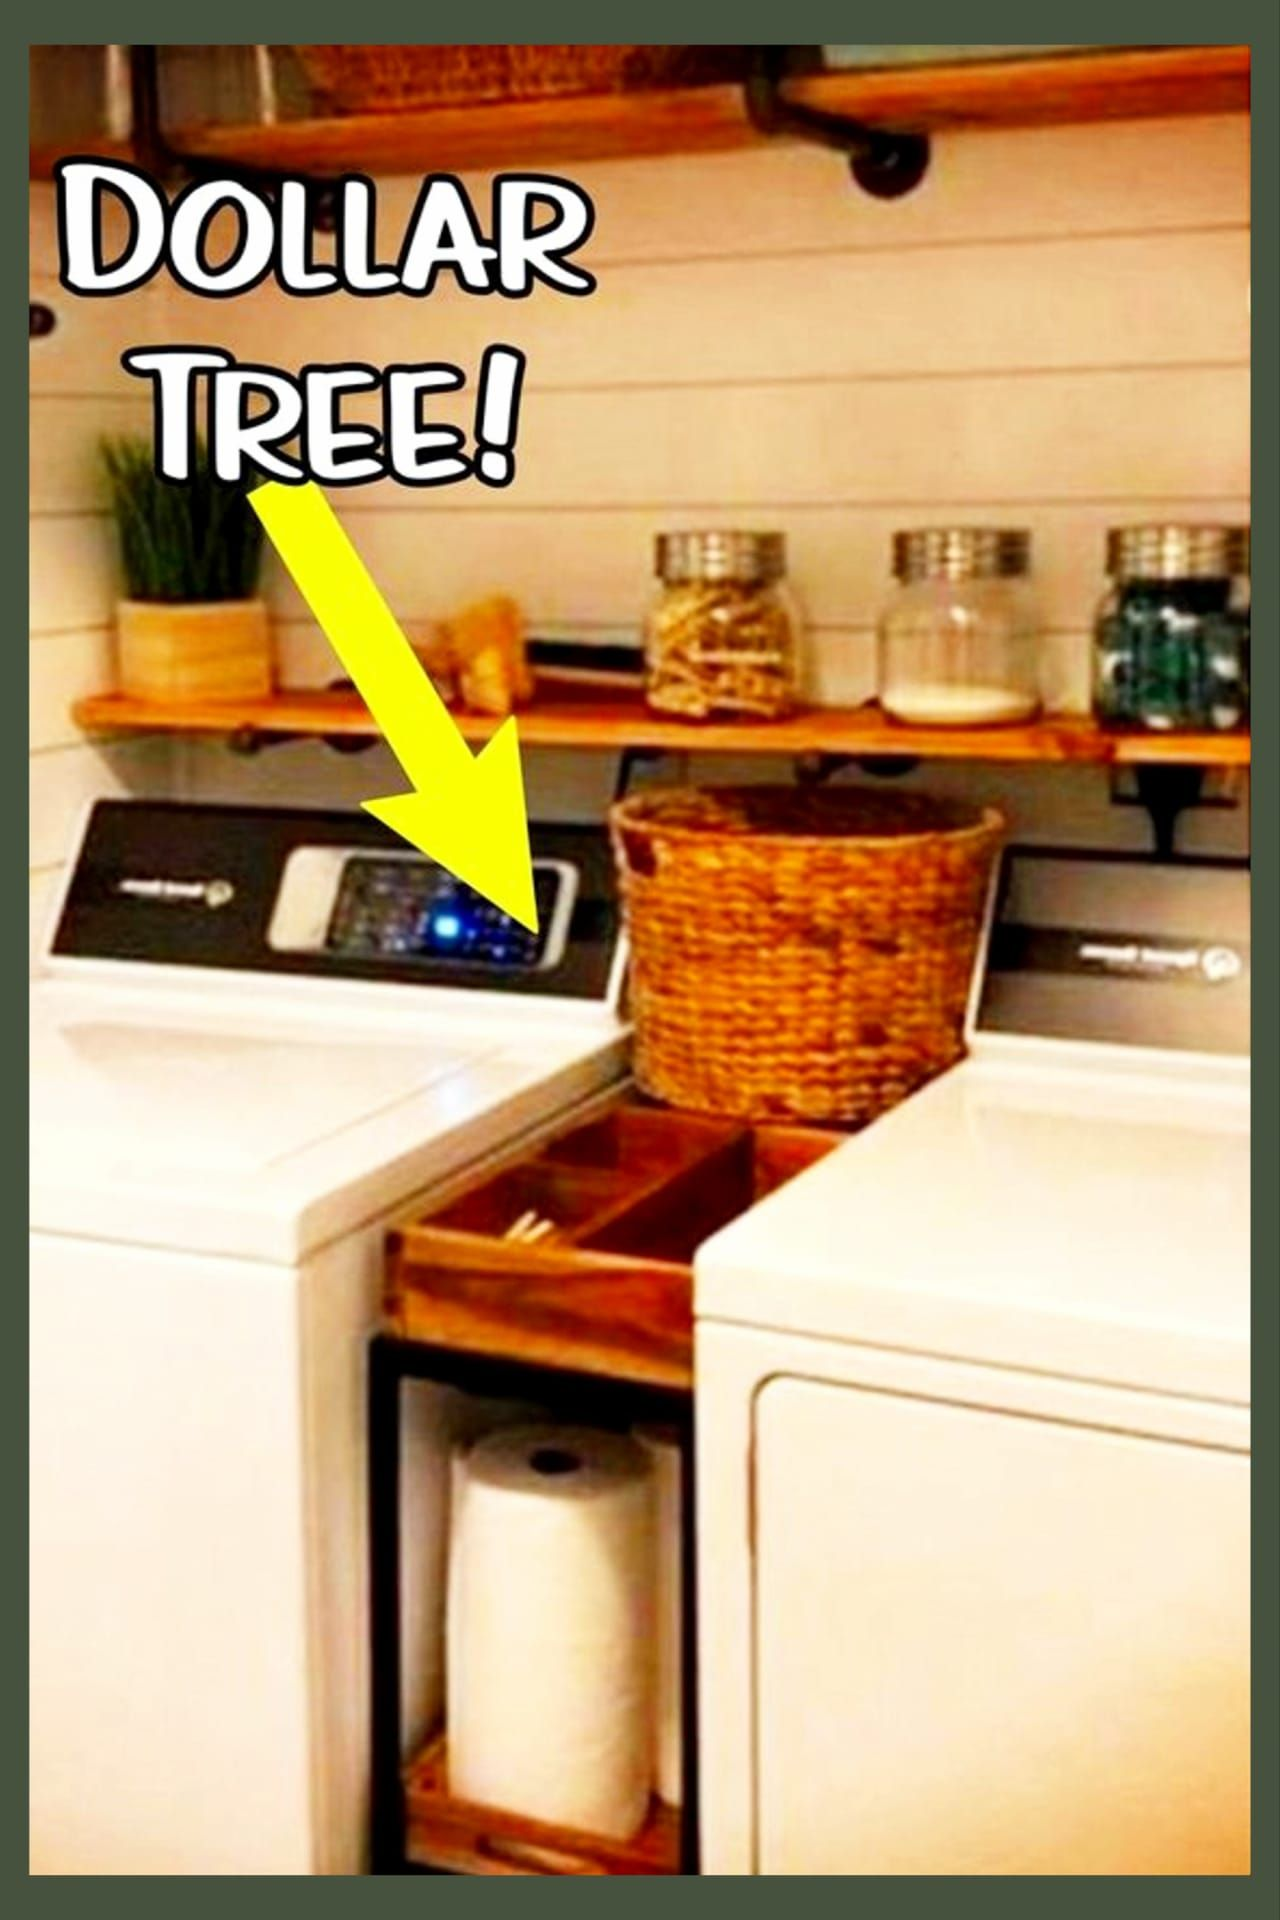 Small Laundry Room Ideas Space Saving Ideas For Tiny Laundry Rooms Creative And Simple Diy Small Laundry Rooms Small Laundry Room Organization Tiny Laundry Rooms